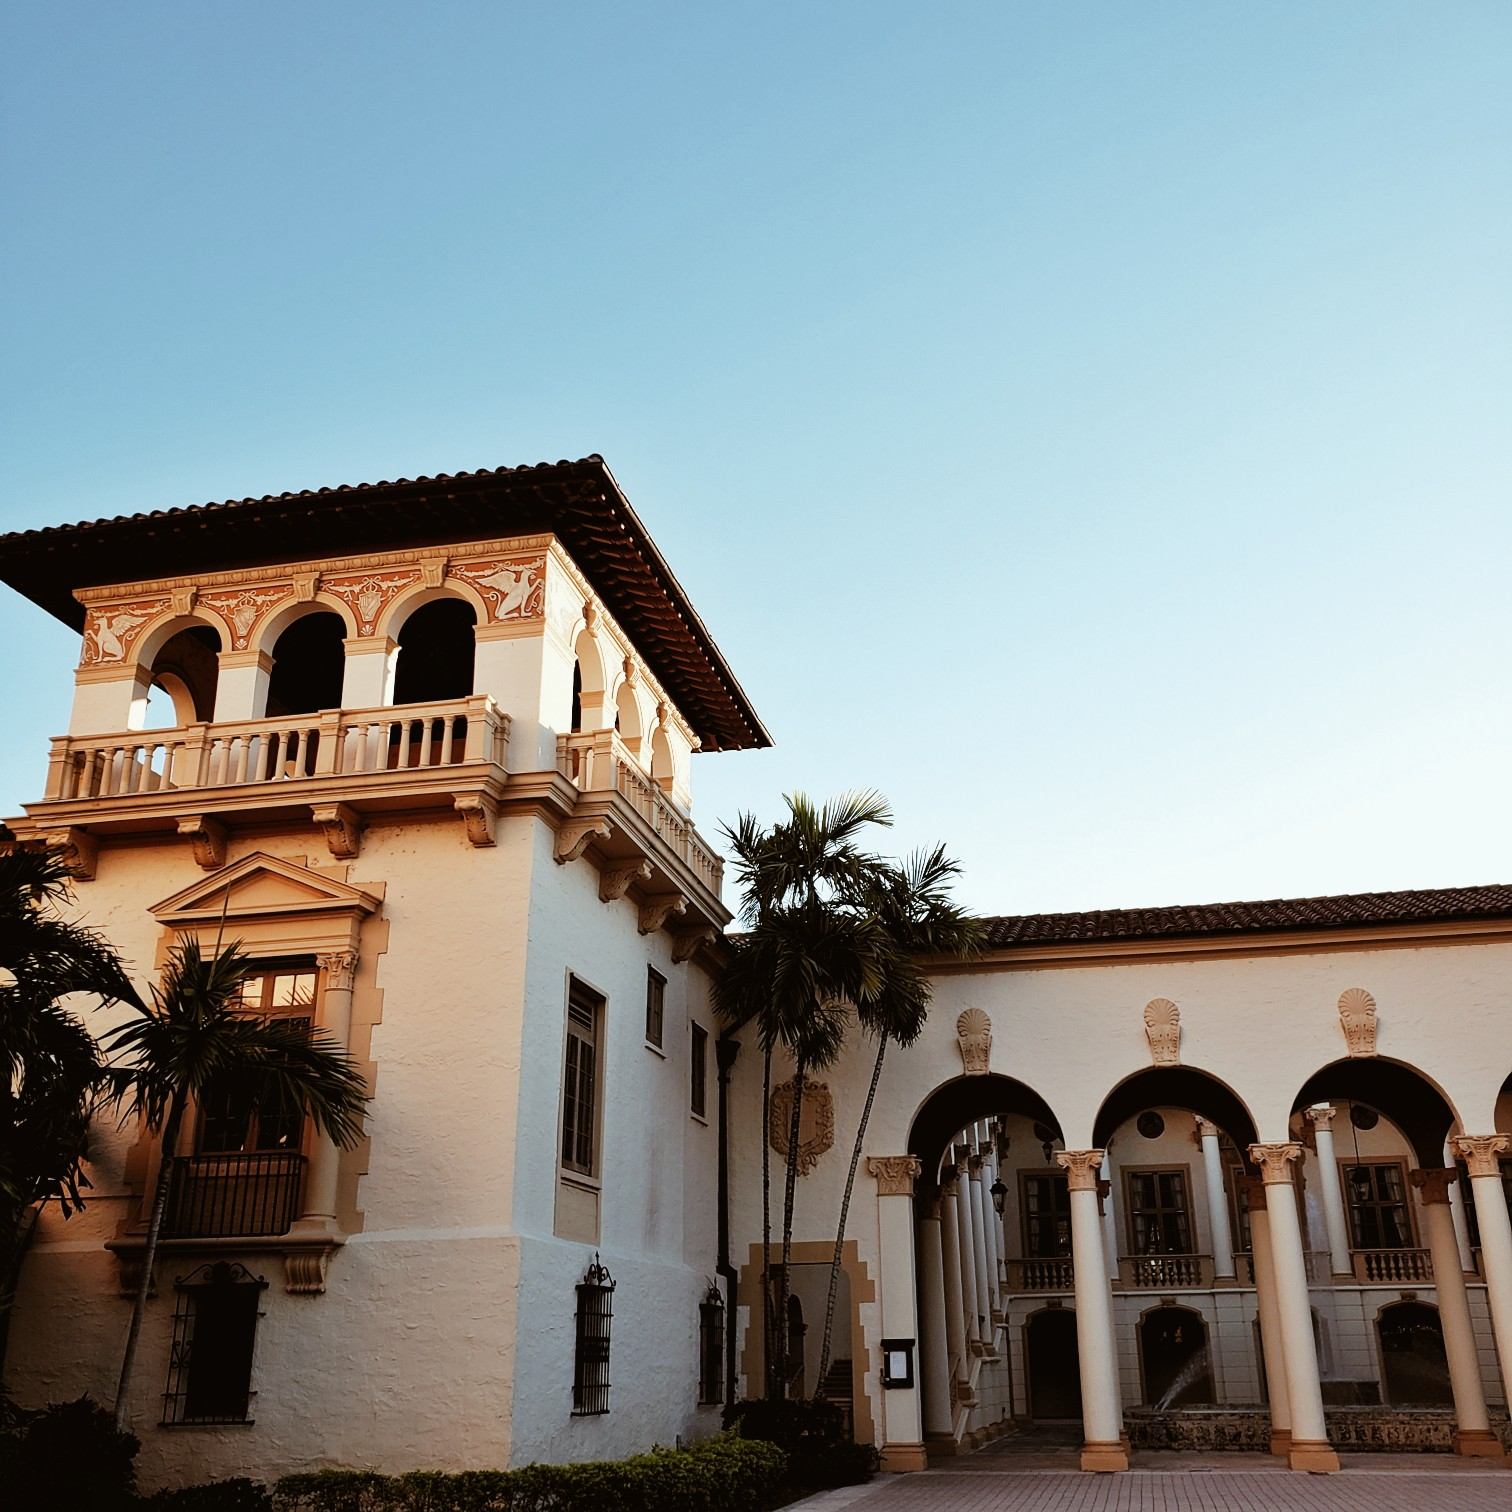 Biltmore Hotel Miami Coral Gables Luxury Staycation